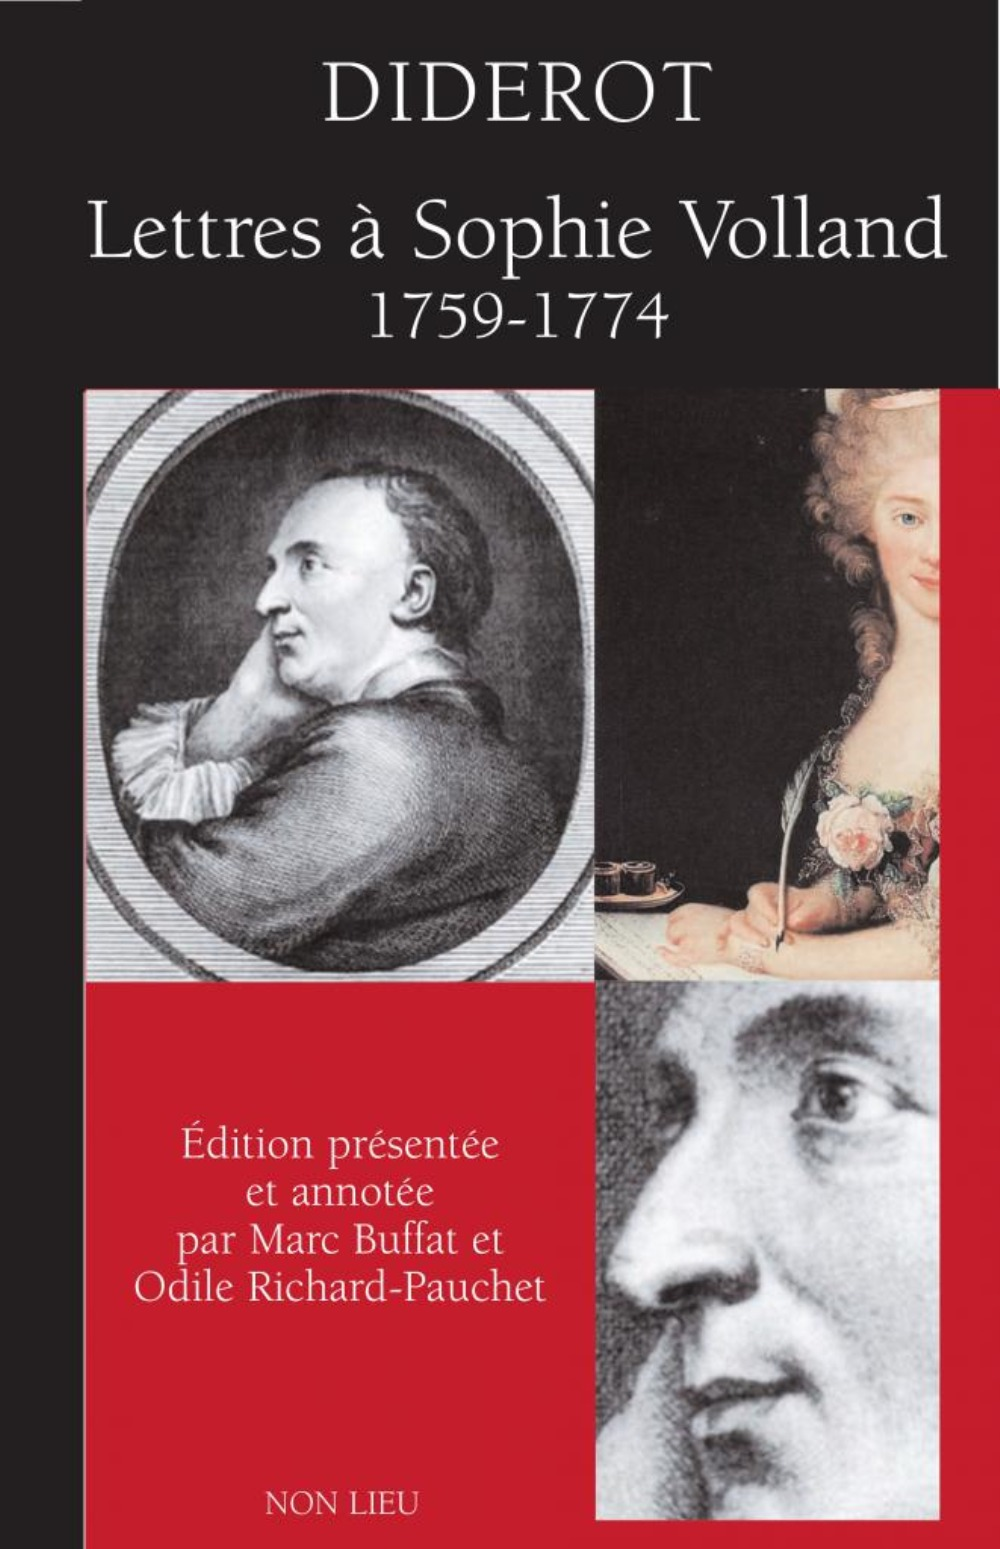 DIDEROT, LETTRES A SOPHIE VOLLAND (1759-1174)